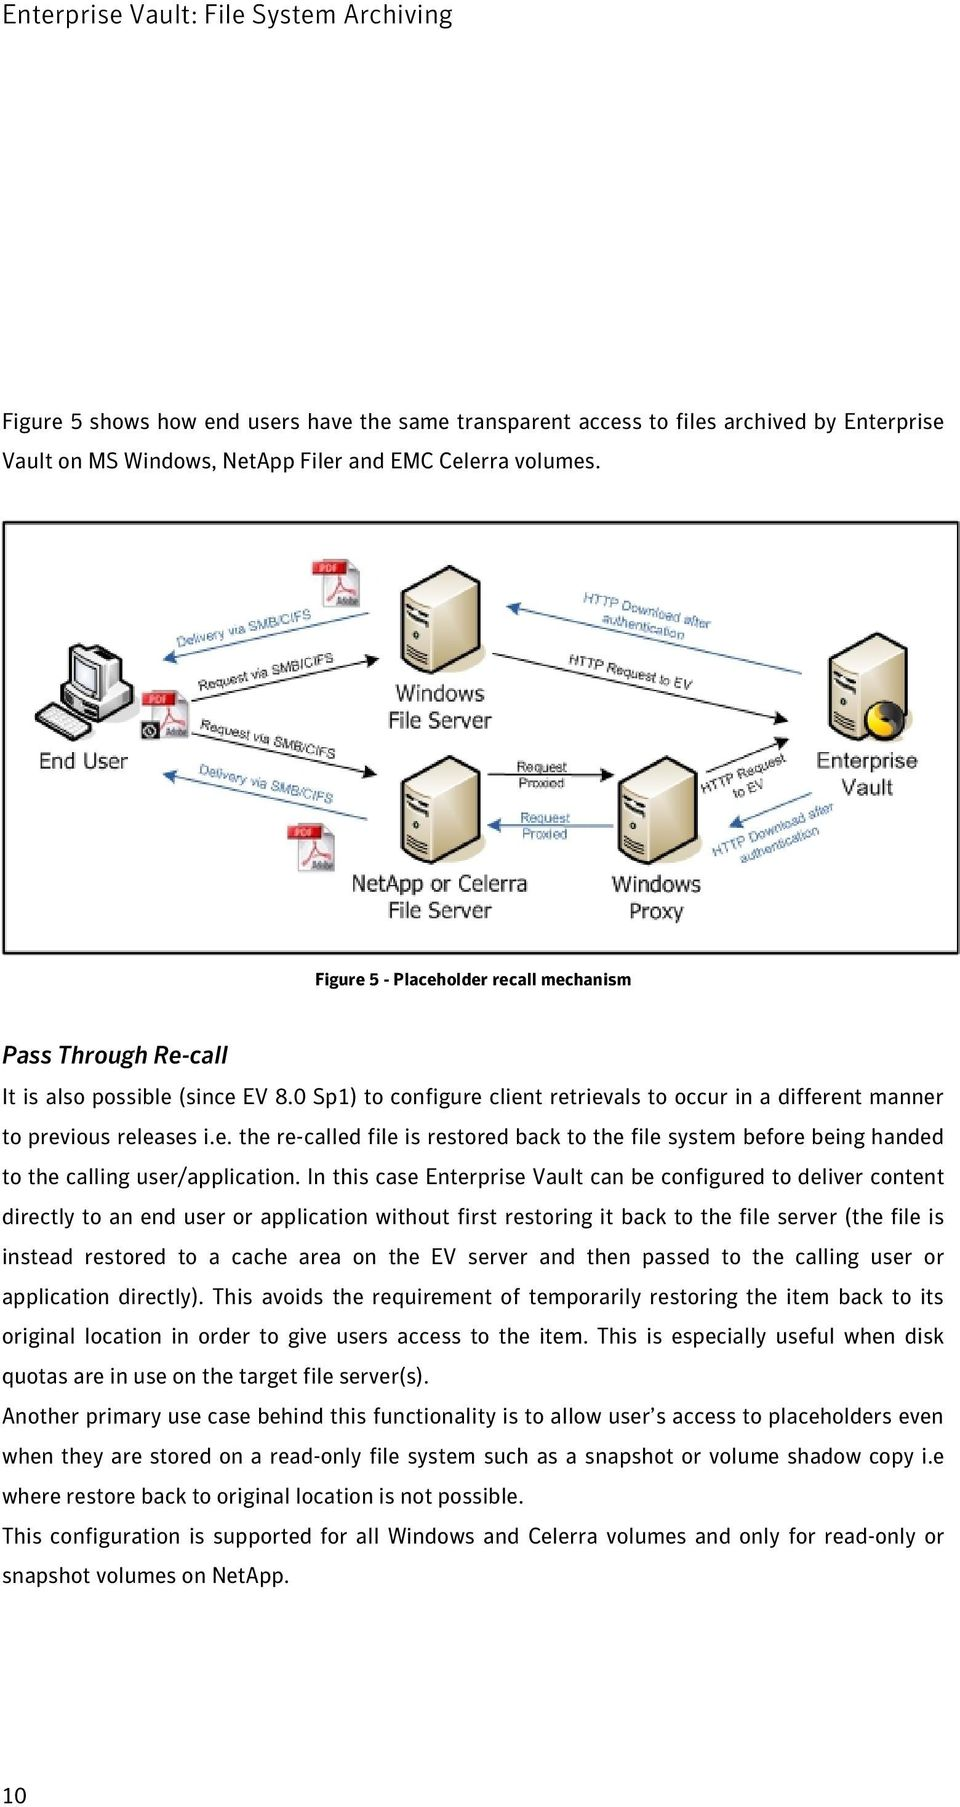 In this case Enterprise Vault can be configured to deliver content directly to an end user or application without first restoring it back to the file server (the file is instead restored to a cache